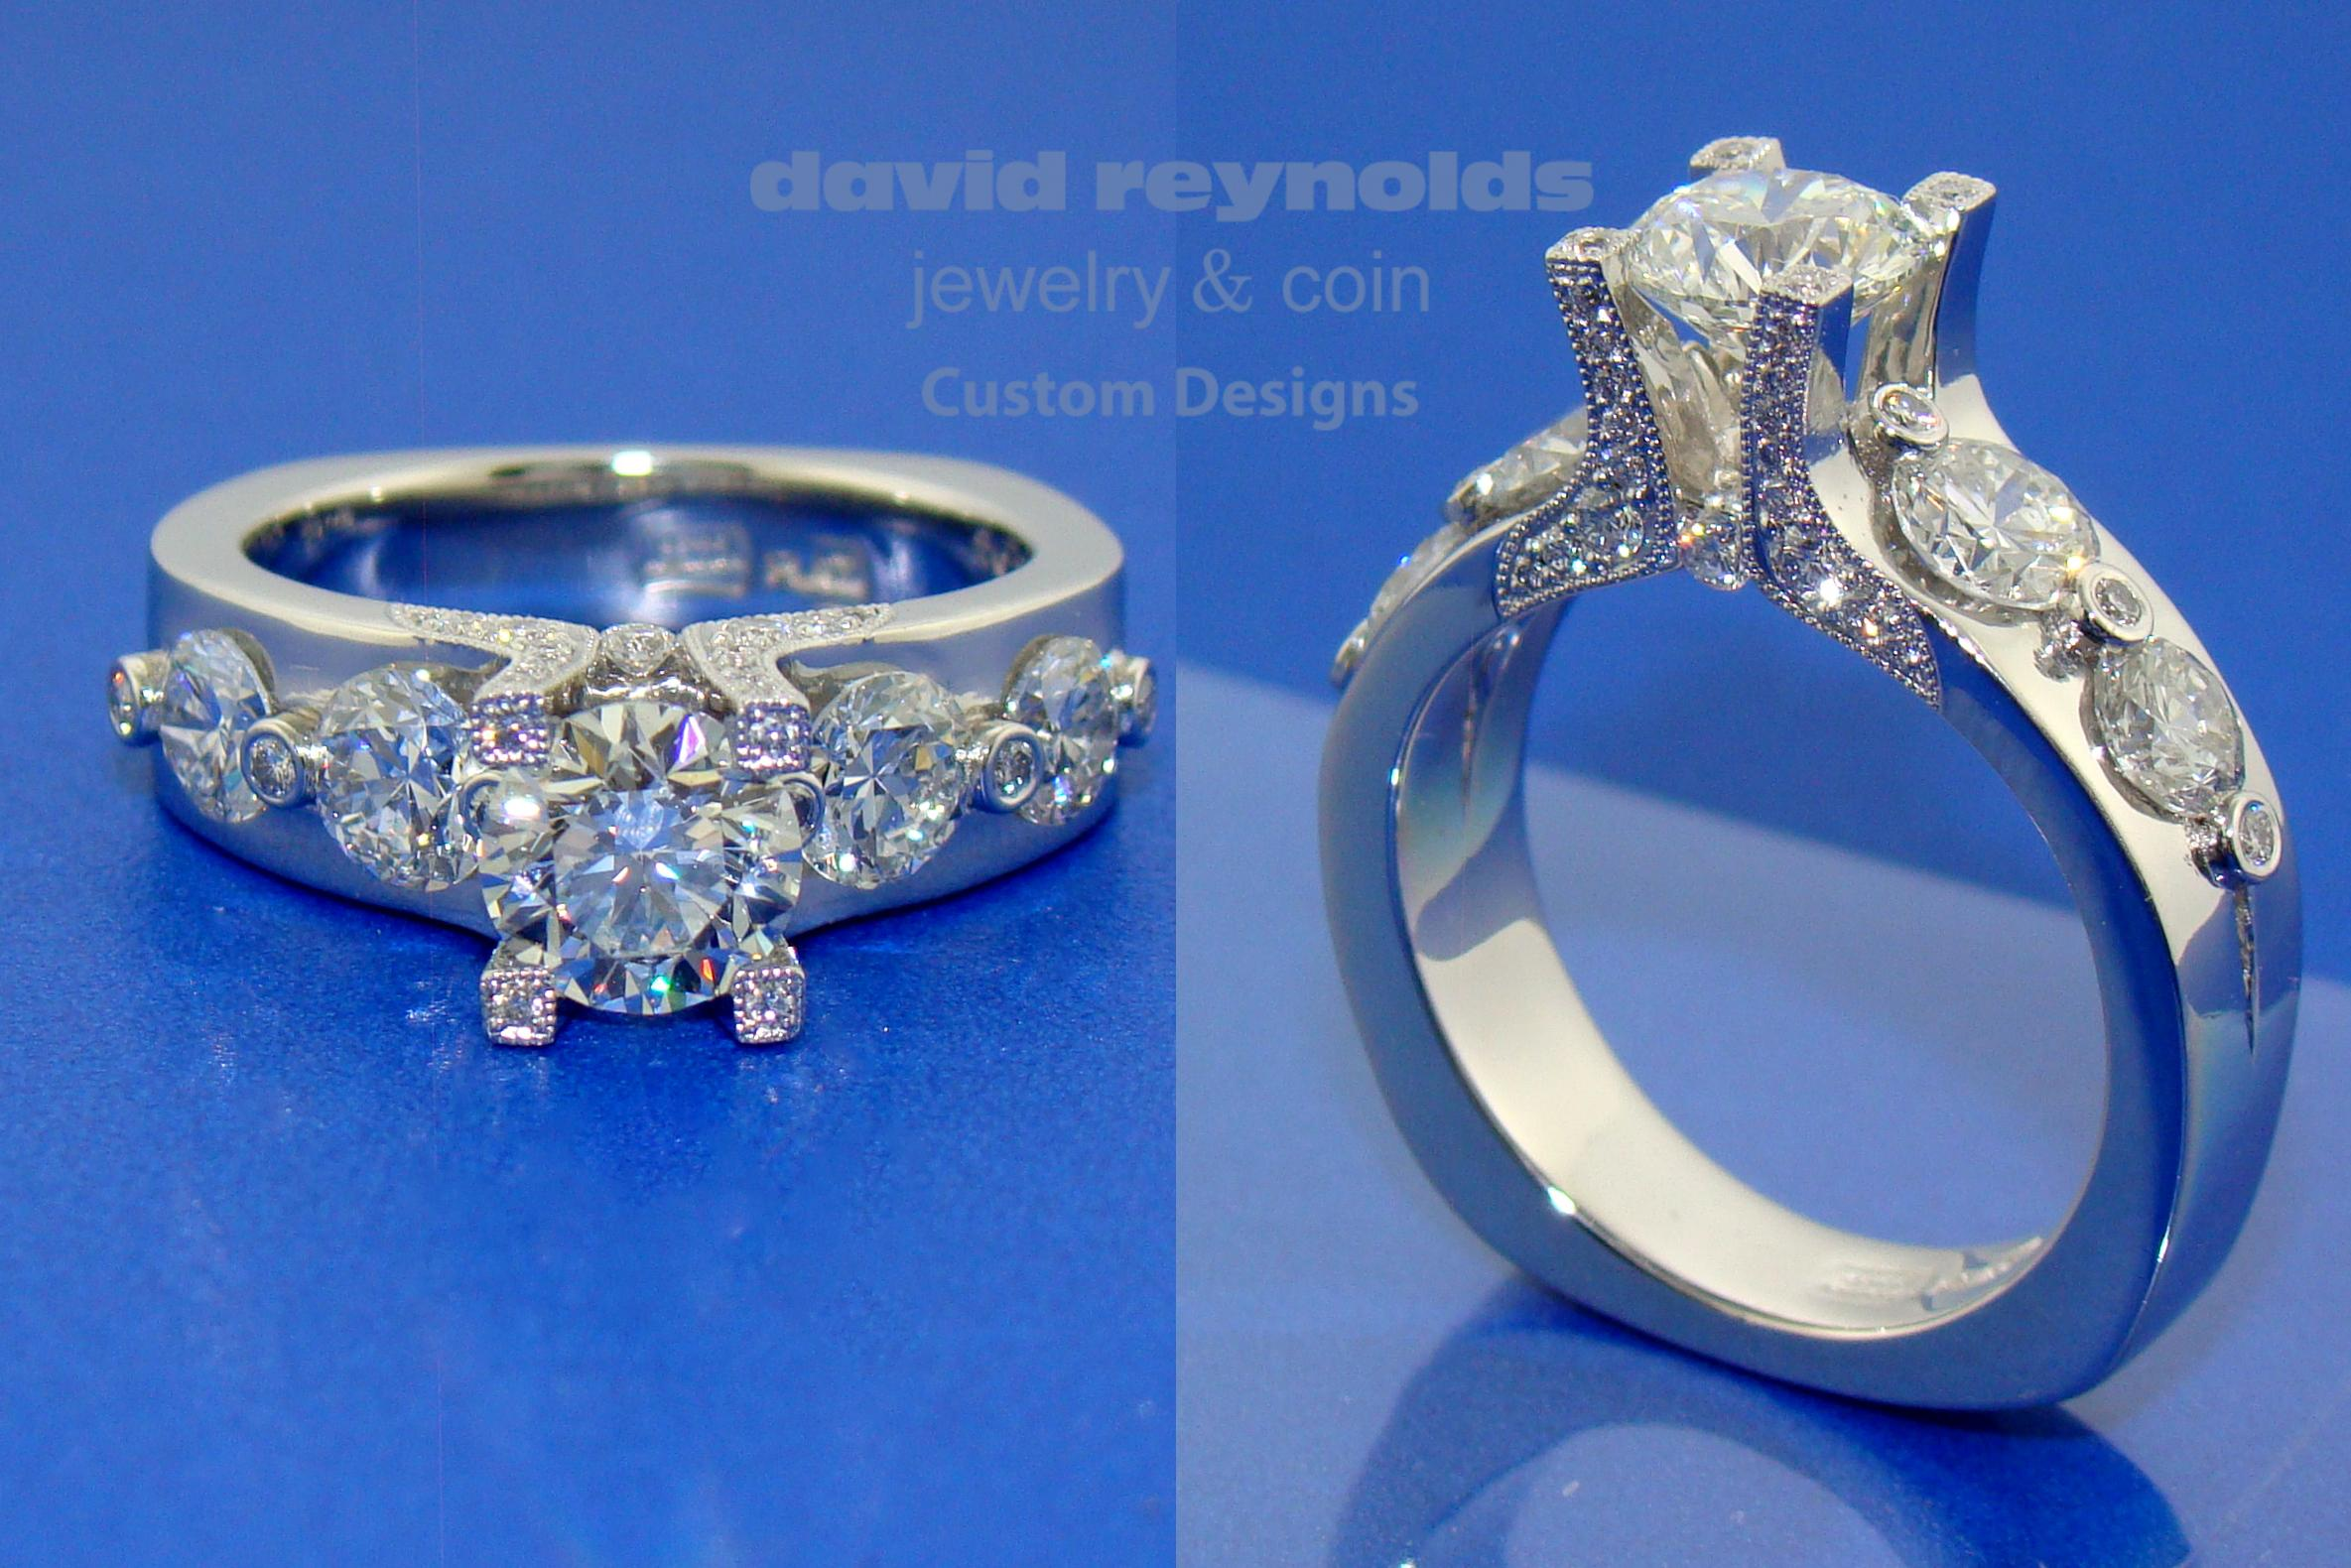 david reynolds jewelry and coin in st petersburg fl